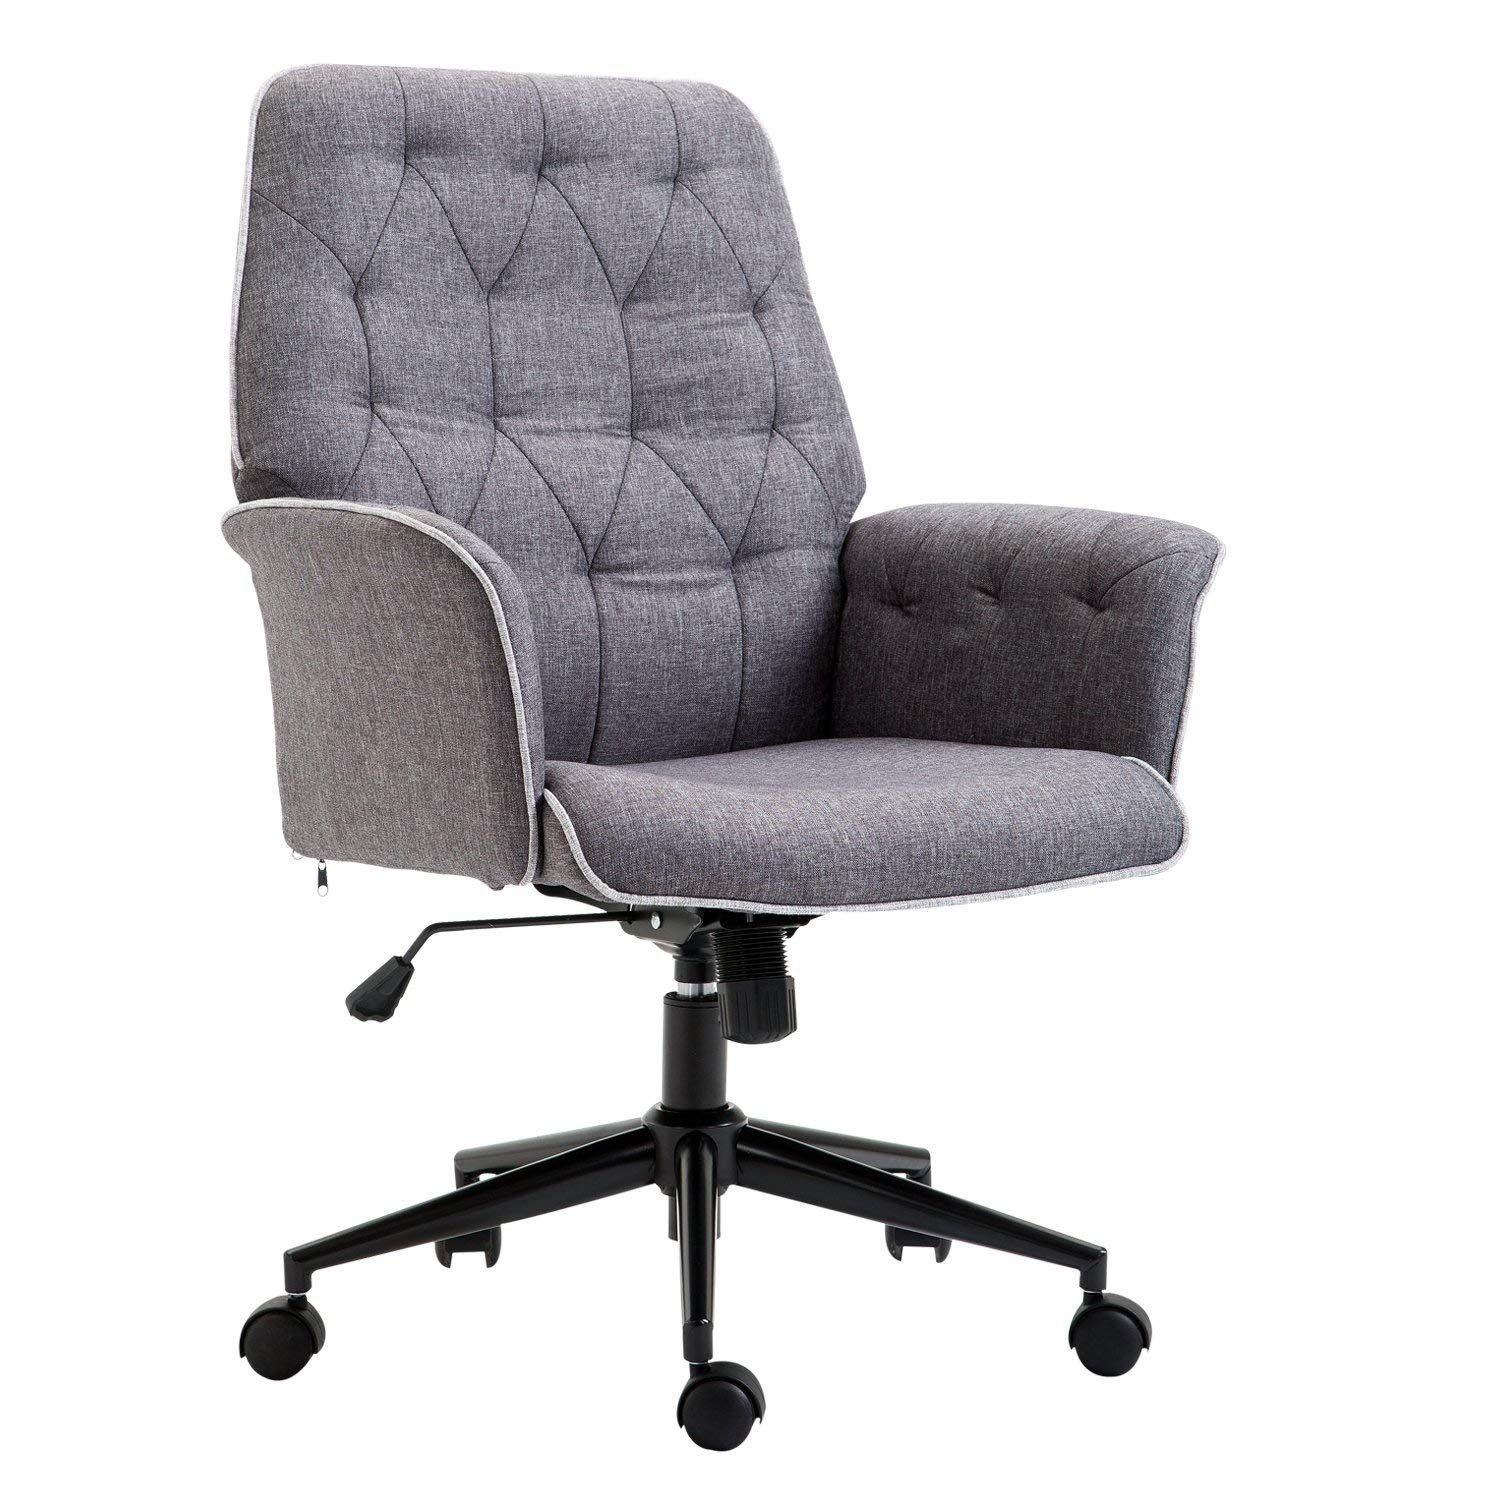 Adjustable modern linen upholstered office chair with